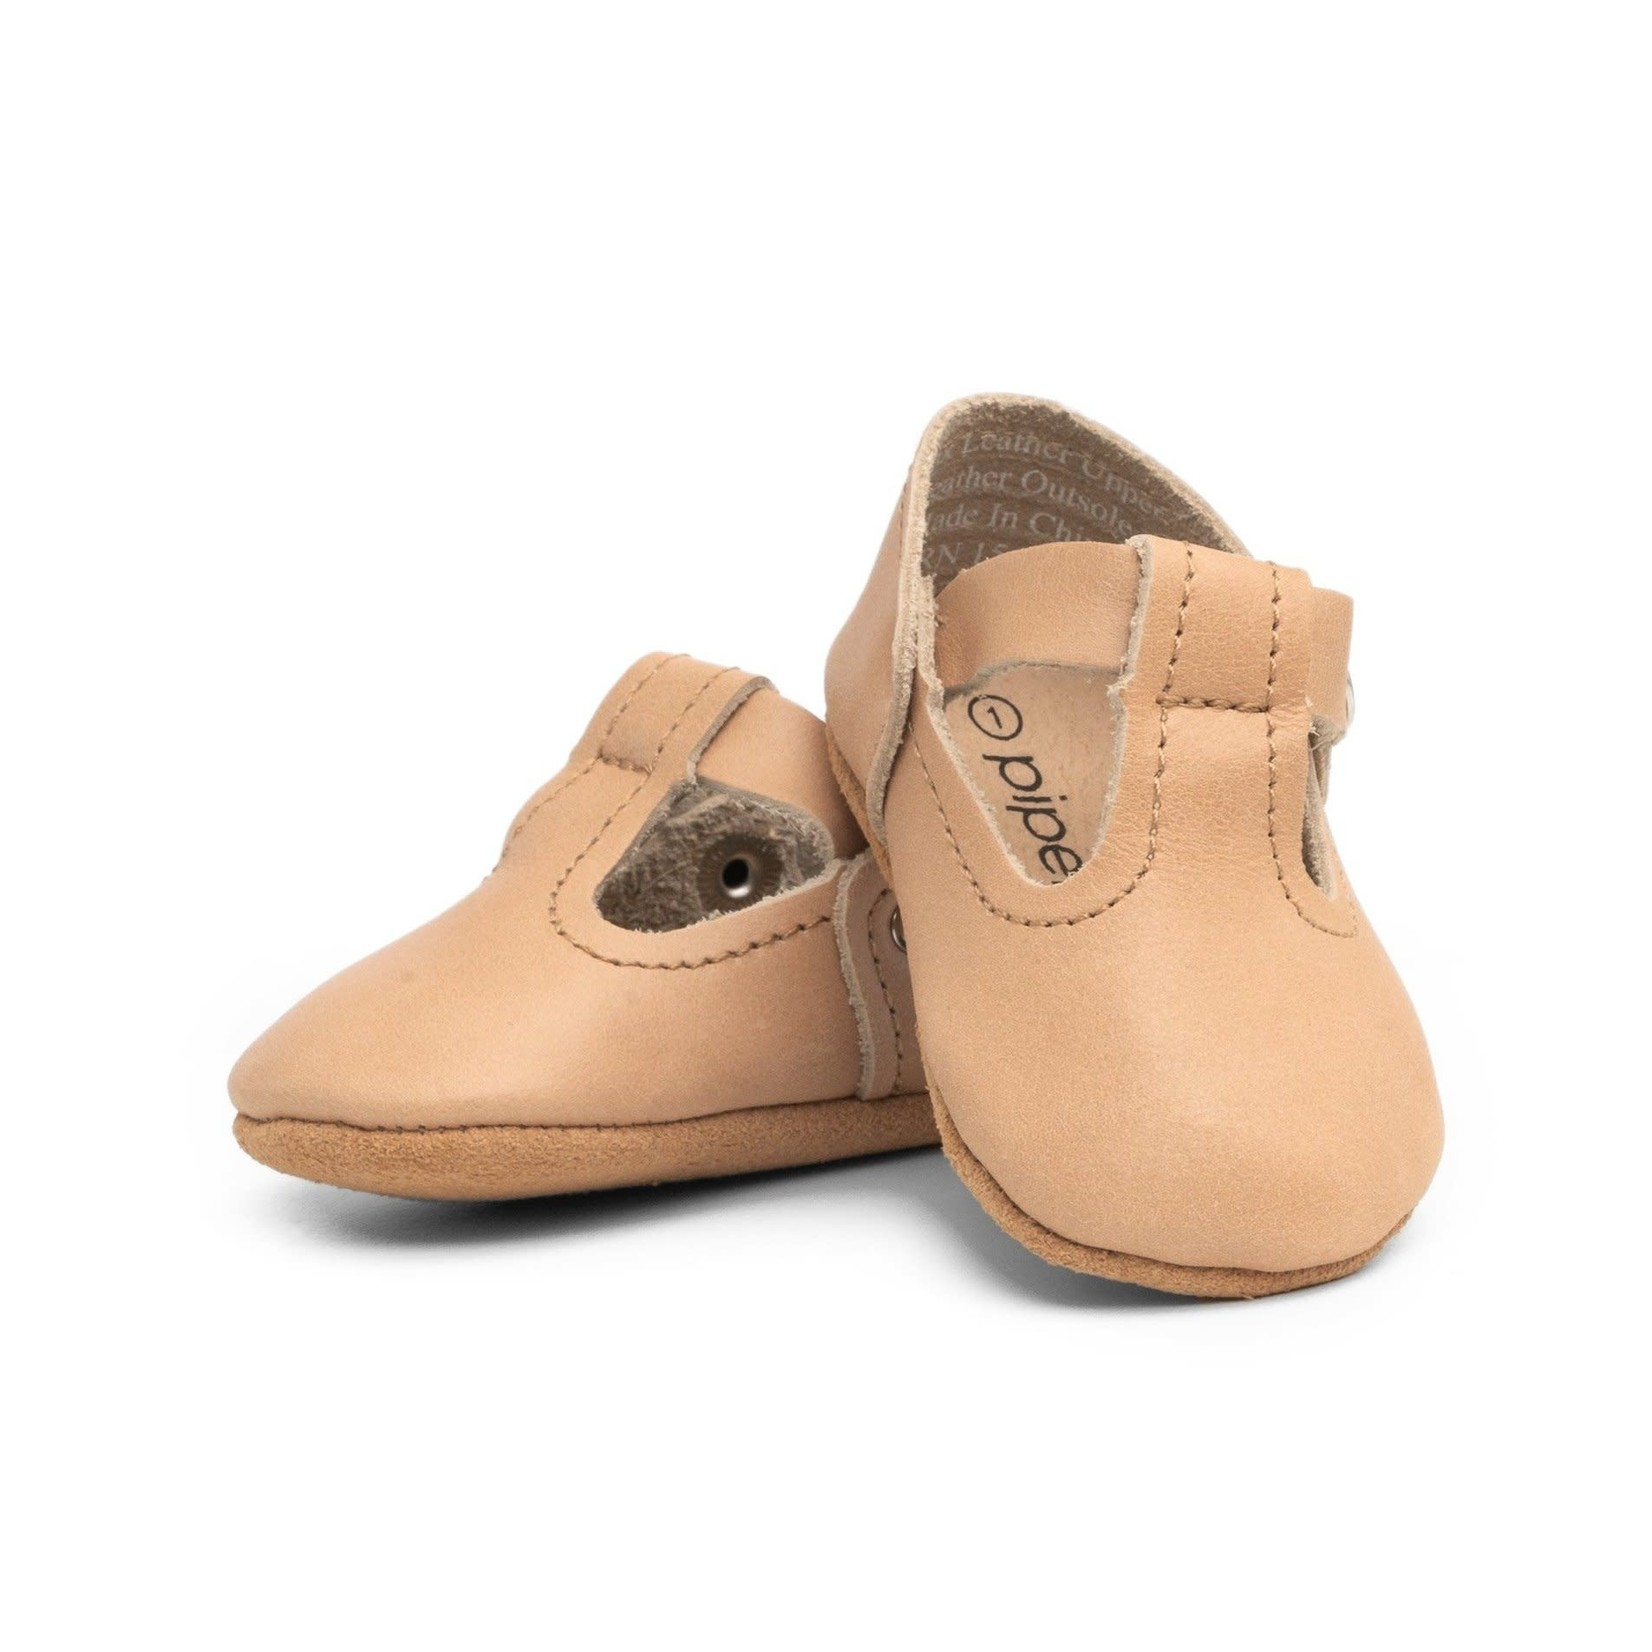 T-Strap Mary Jane - Tan -  Soft Sole